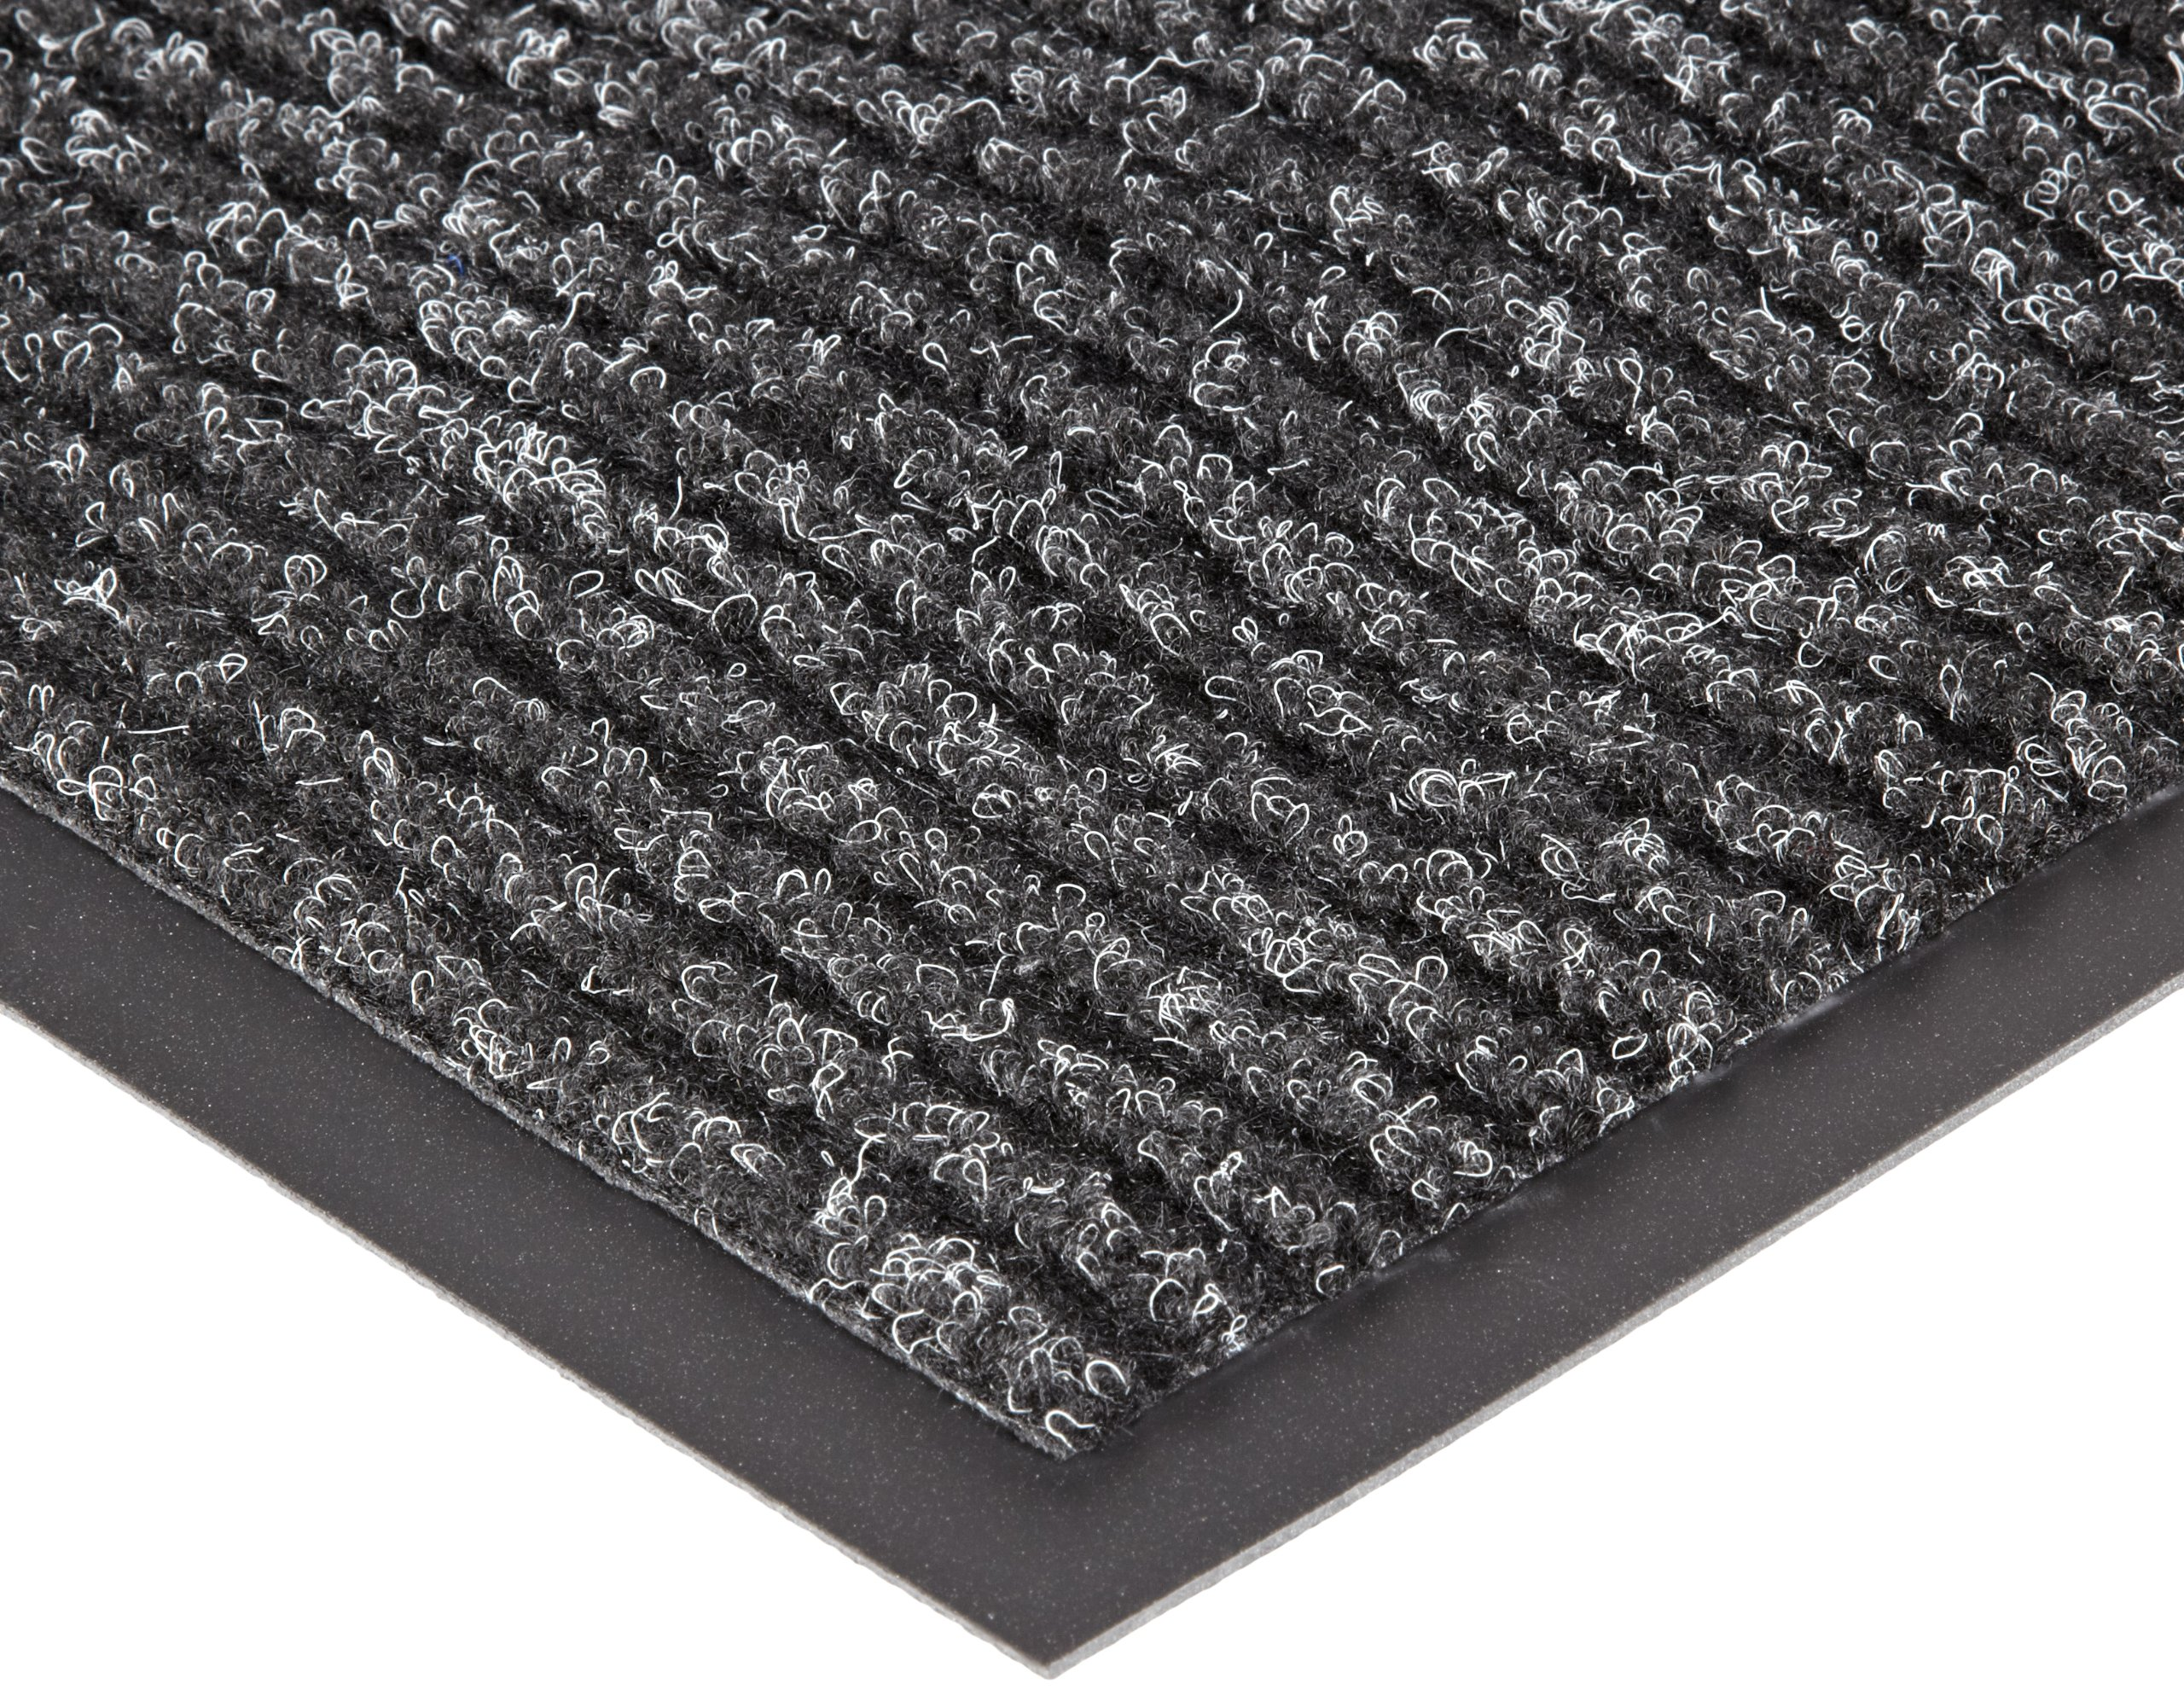 NoTrax 109S0035CH Brush Step Entrance Mat, for Lobbies and Indoor Entranceways, 3' Width x 5' Length x 3/8'' Thickness, Charcoal by NoTrax Floor Matting